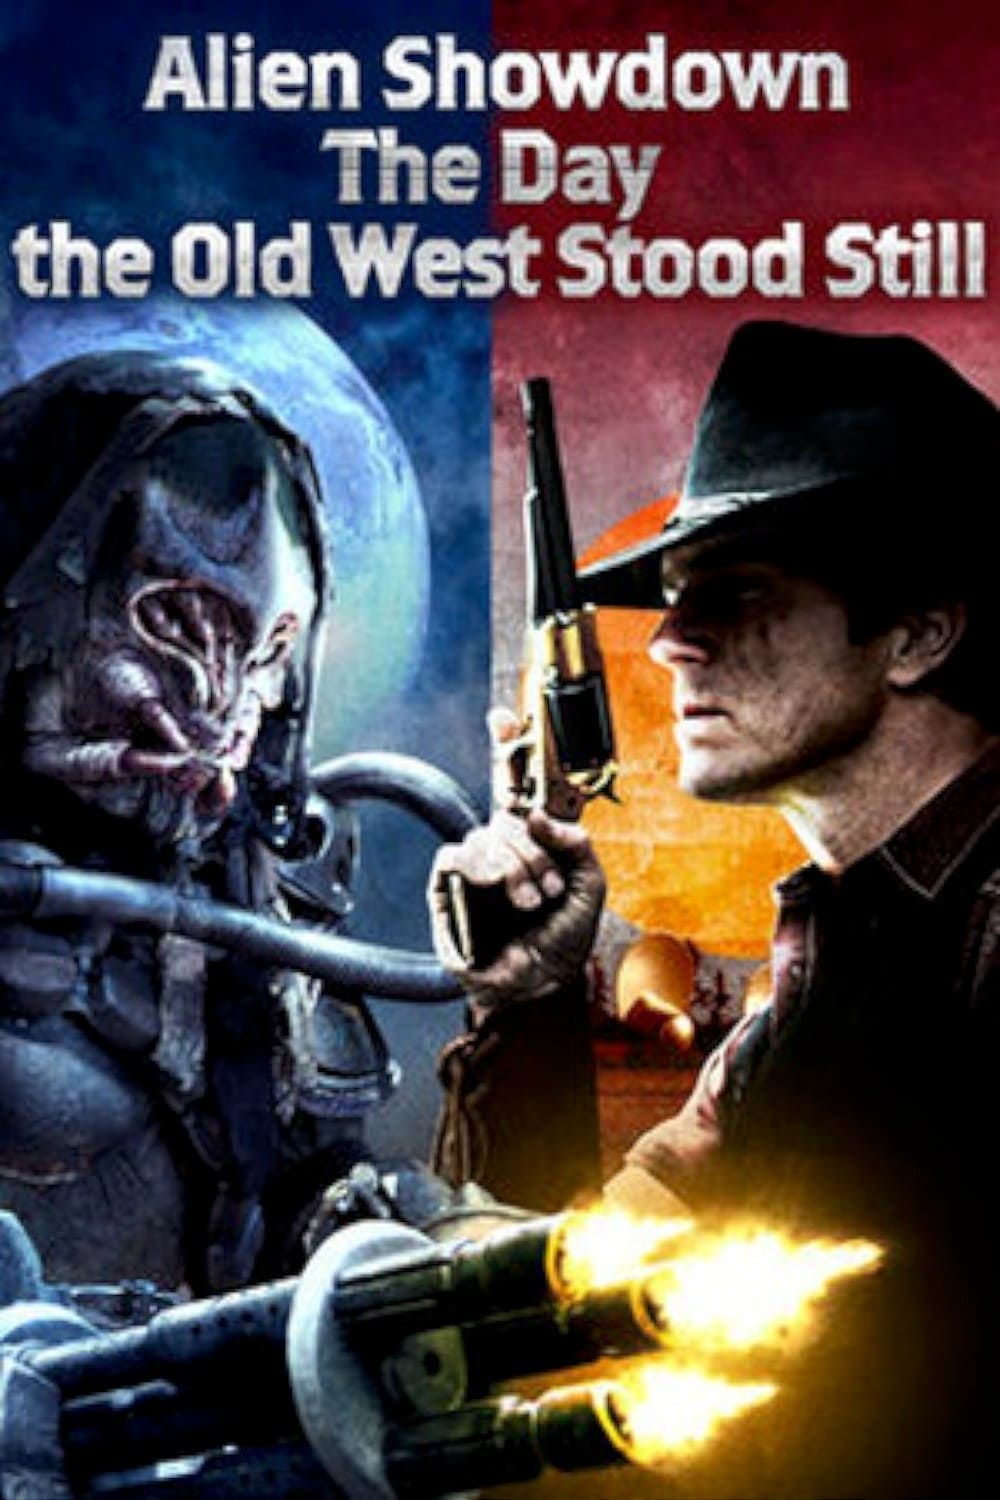 Alien Showdown: The Day the Old West Stood Still on FREECABLE TV